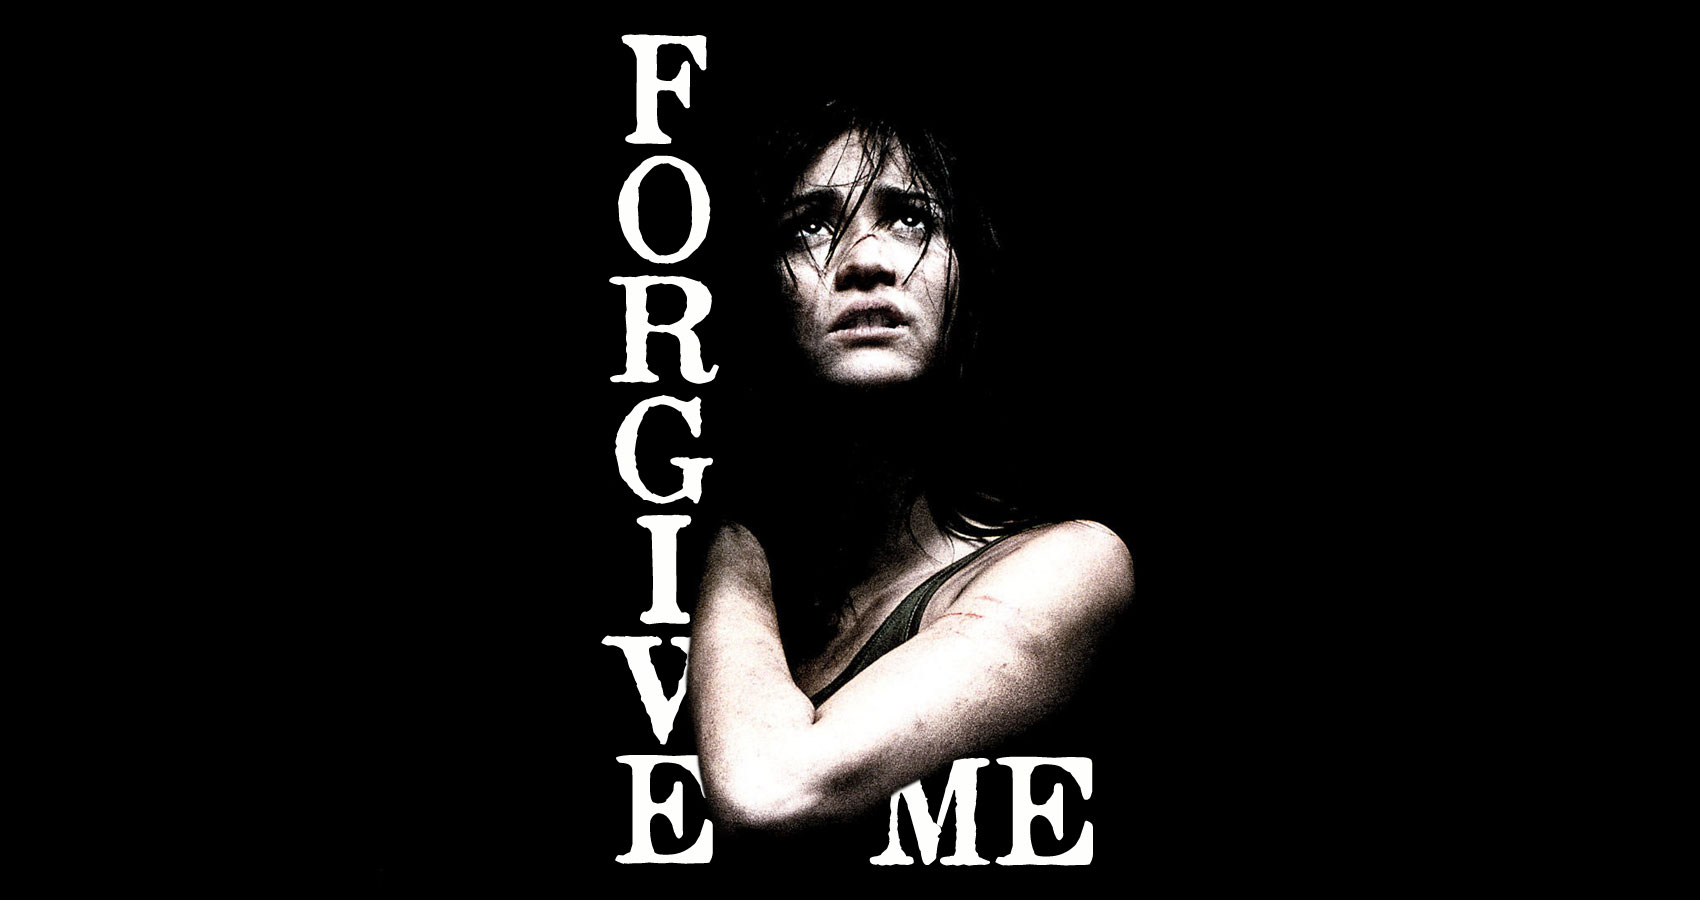 Forgive Me by Jenn Hope at Spillwords.com